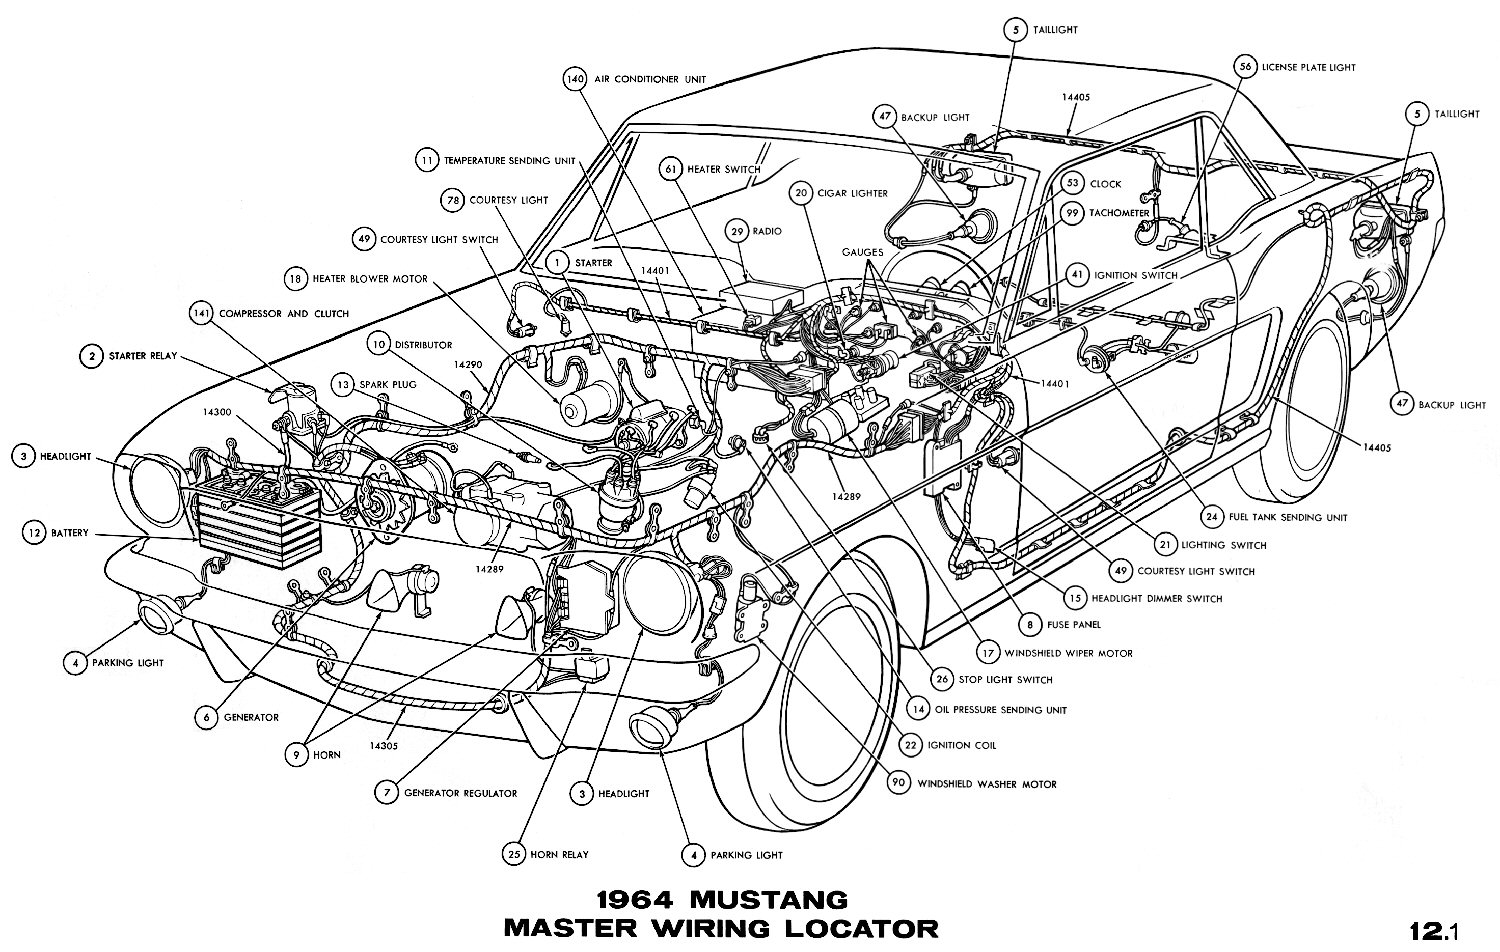 Ford Mustang Diagram - Wiring Diagram Rows on 2000 mustang firing order, 2000 mustang owners manual, 2000 ford 3.8 engine diagram, 2000 mustang charging system, 2000 mustang alternator wiring, 2000 mustang jacking points, 2000 mustang solenoid, 2000 mustang tires, 2000 mustang thermostat, 2000 mustang battery, 2000 mustang stereo wiring, 2000 mustang steering, 2000 mustang troubleshooting, 2000 mustang wiper motor, bmw wiring diagram, ford wiring diagram, 2000 mustang repair, 2000 mustang wire harness, chevrolet wiring diagram, mustang 4.6 engine diagram,